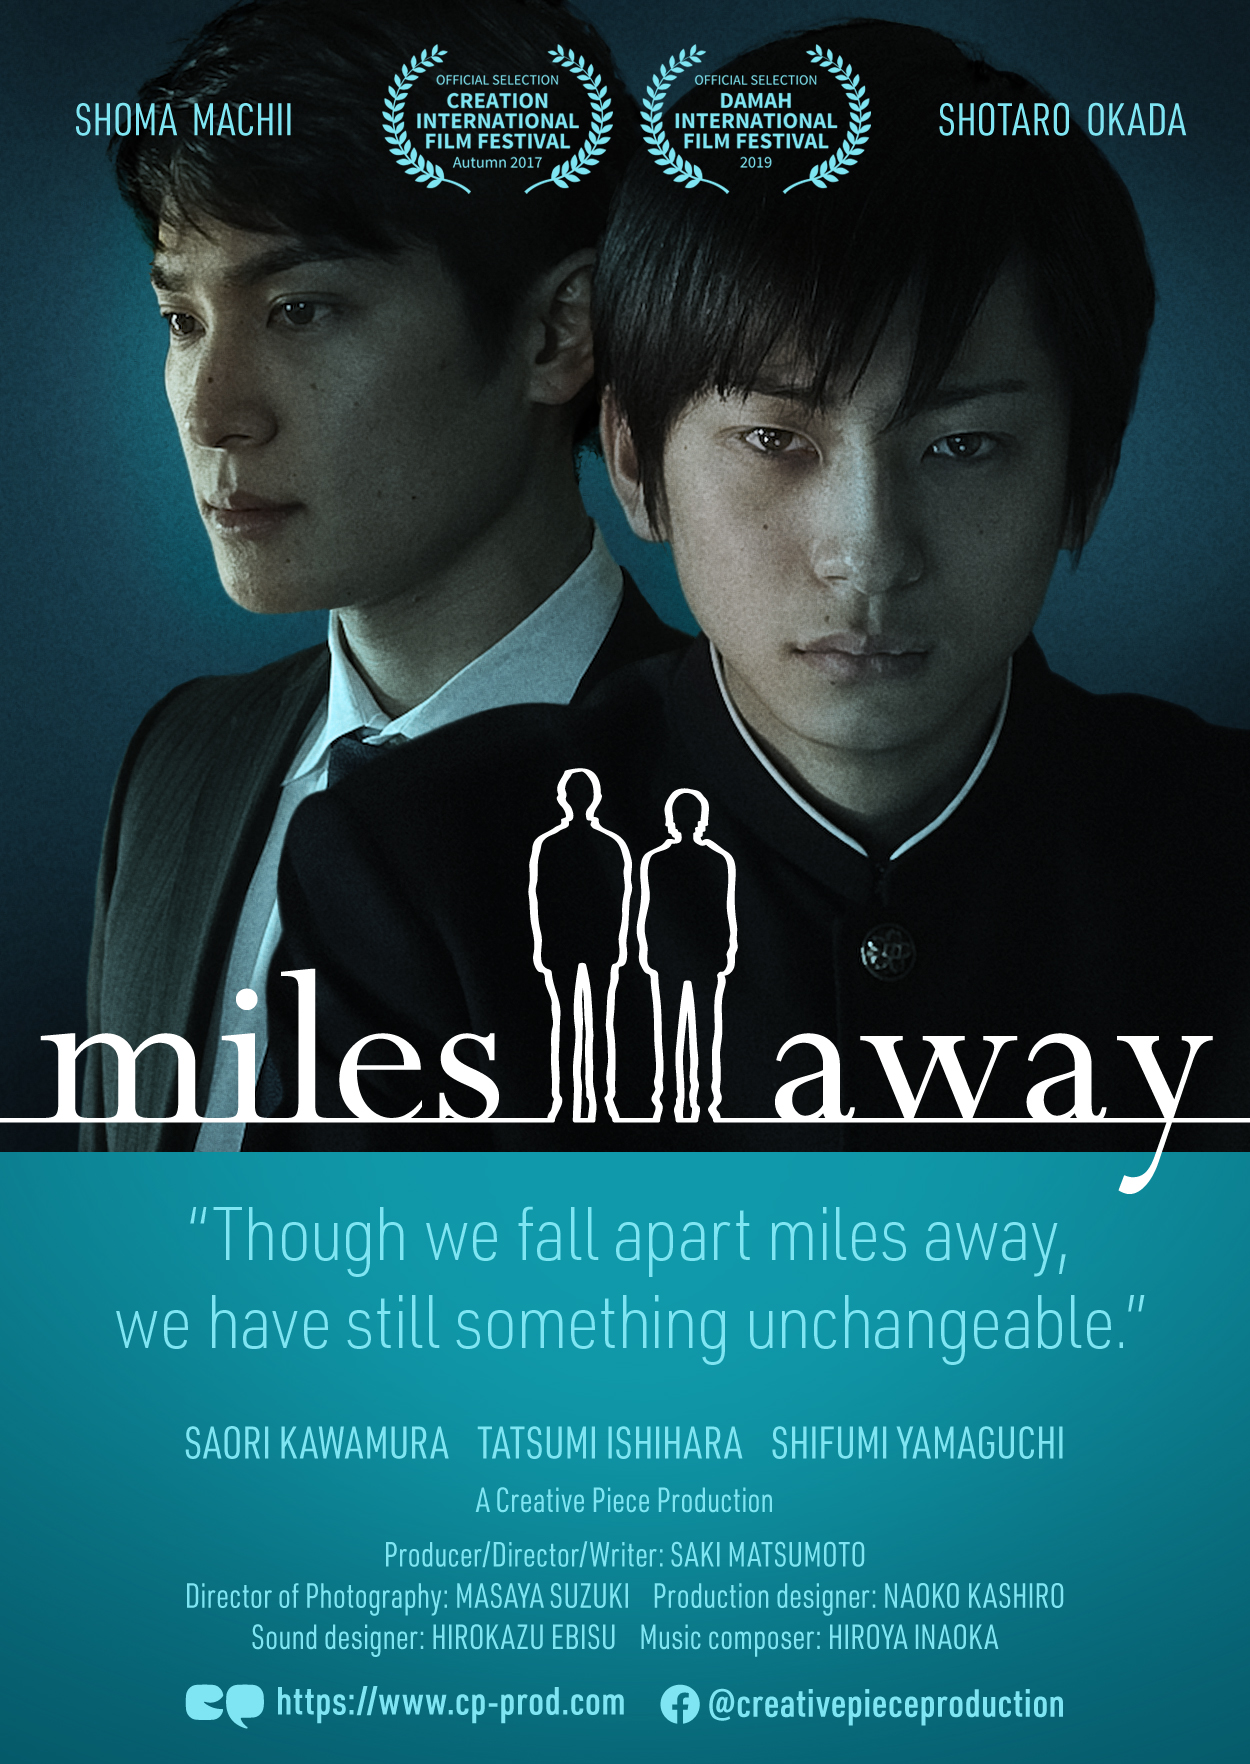 miles away short film review post image 2 controller companies